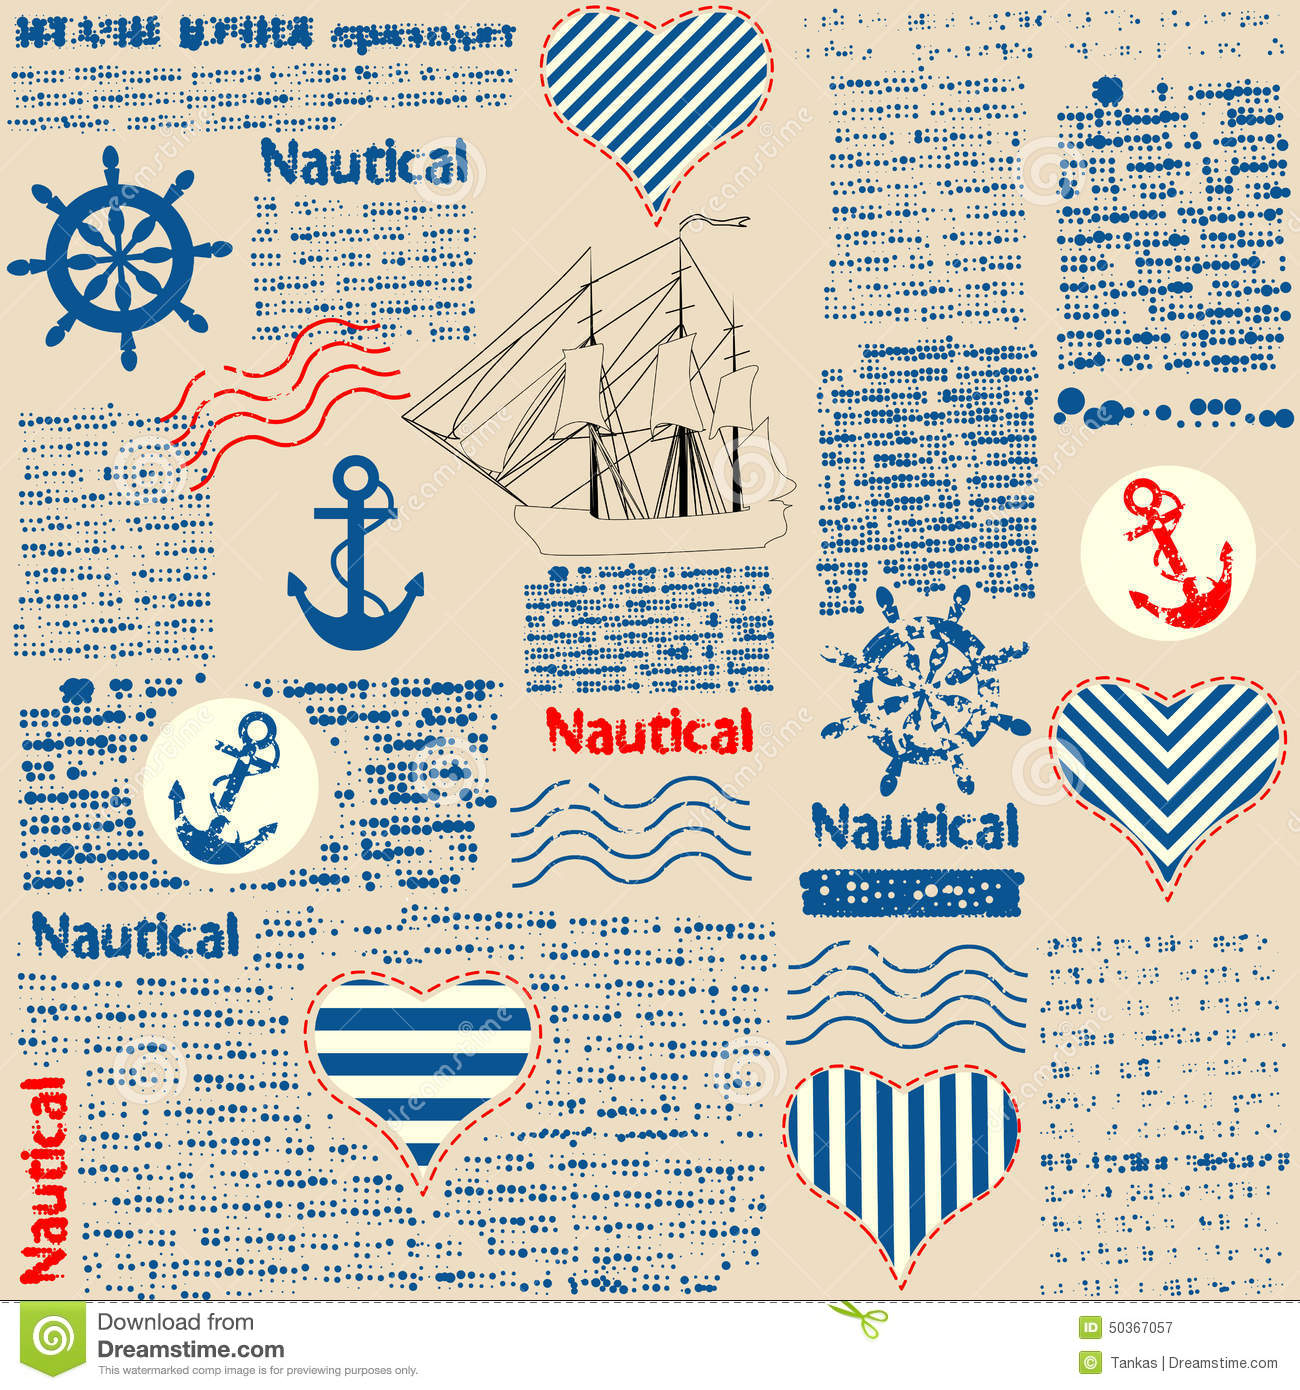 Key Elements Of Nautical Style: Imitation Of Newspaper In Nautical Style With Stock Vector